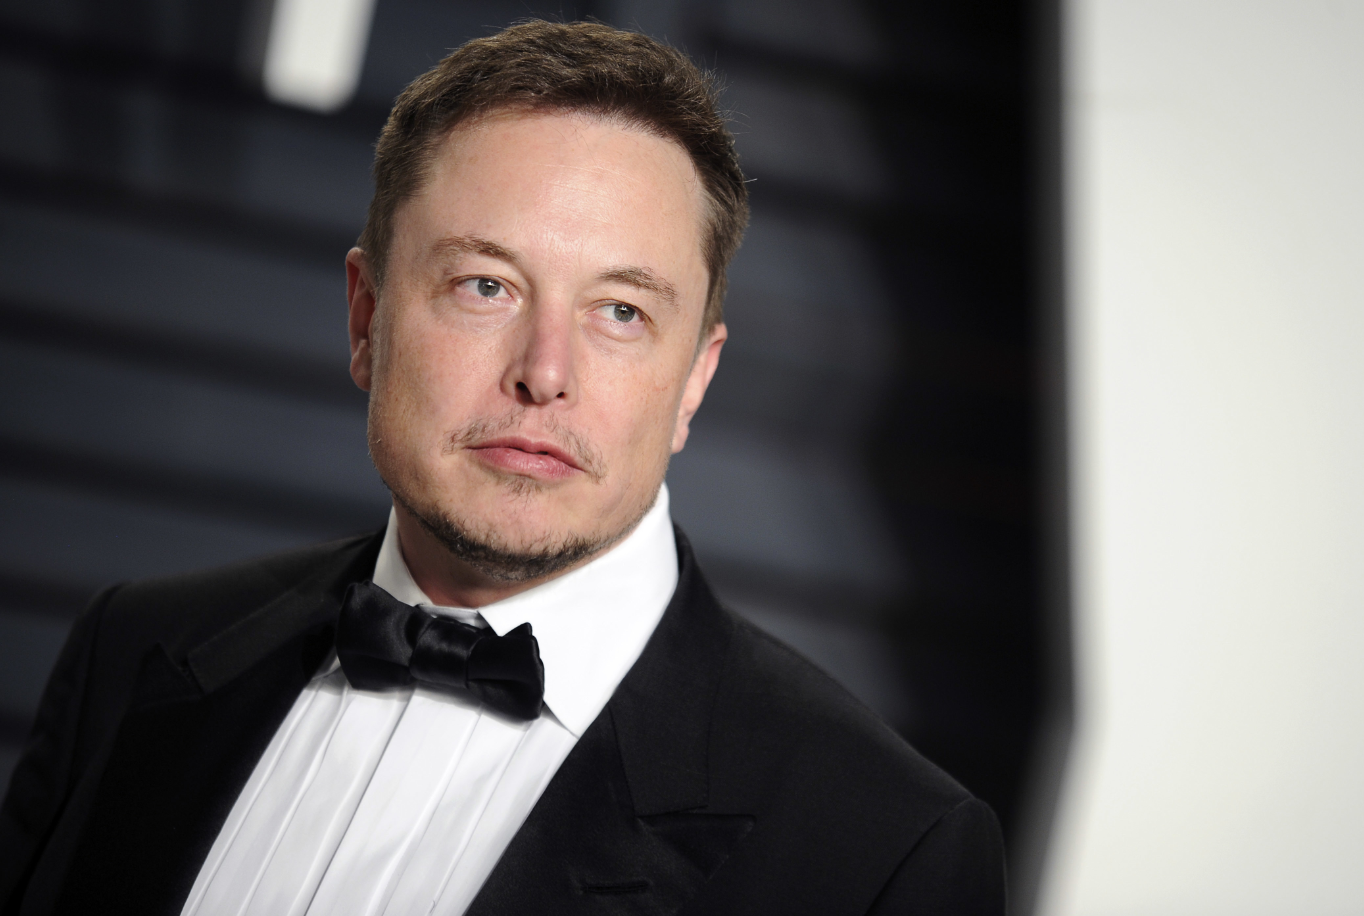 Musk may get no salary unless Tesla hits milestones